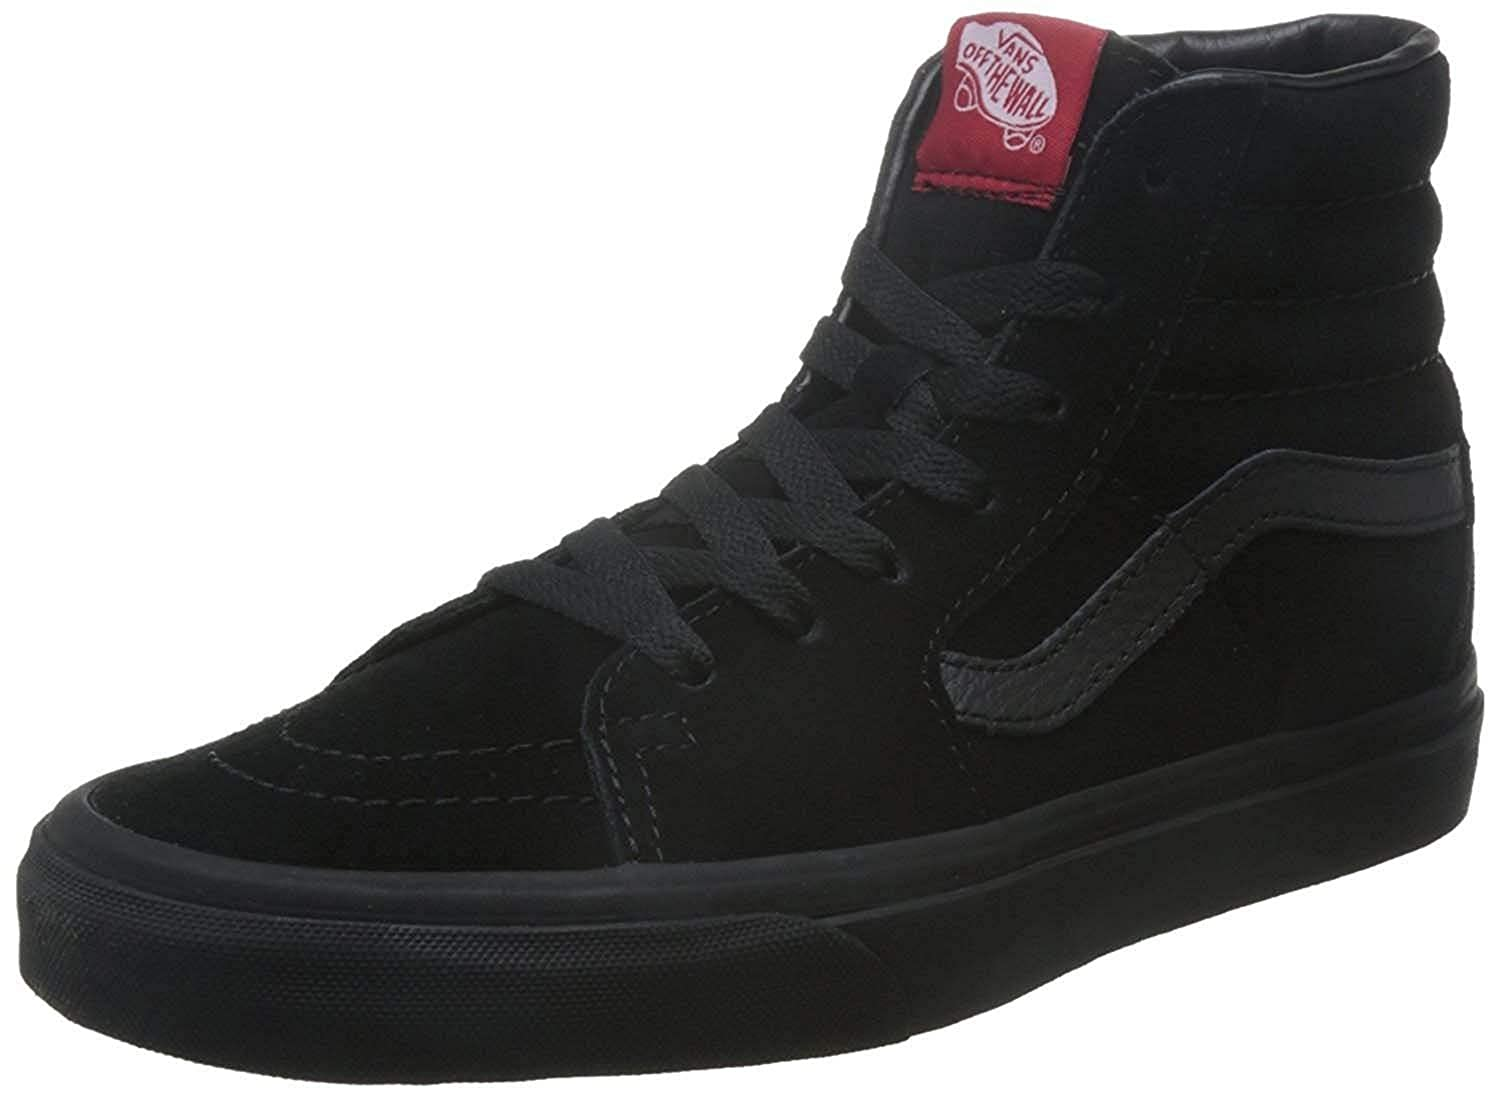 Acquista Vans Men's Sk8 Hi Suede/Textile Lace Up Trainer Black/Black miglior prezzo offerta